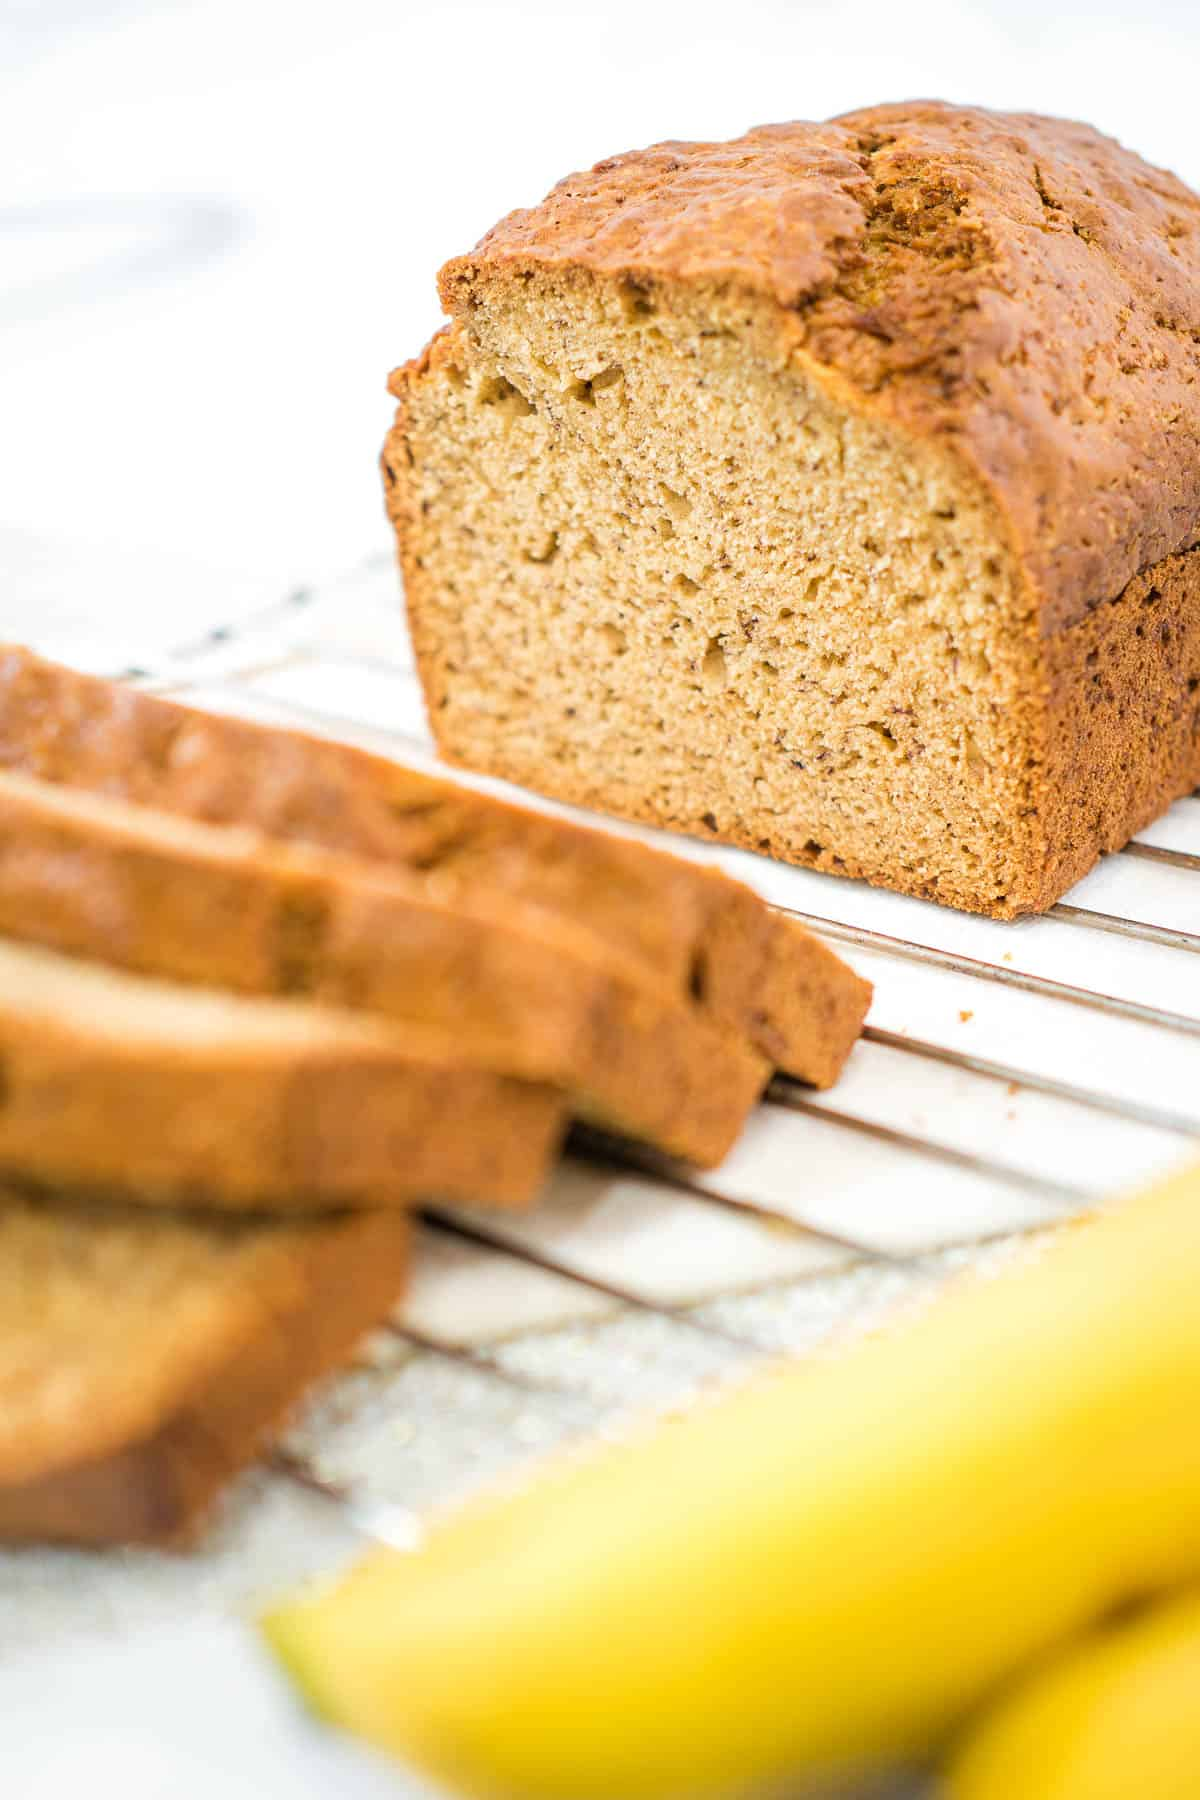 Banana bread with some cut into slices